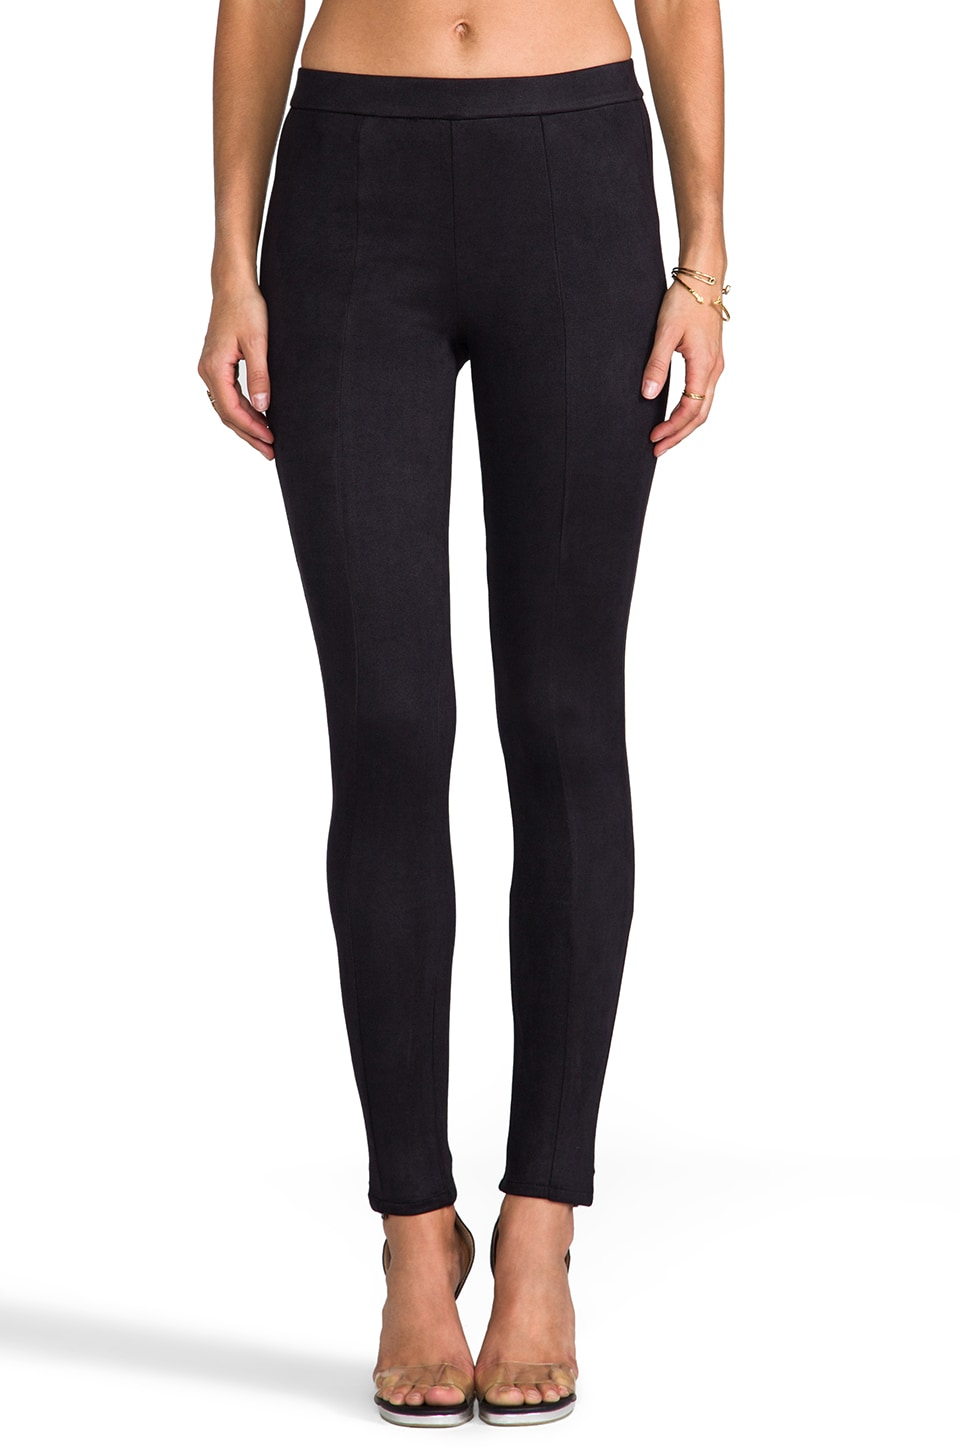 Level 99 Elsie Legging in Black